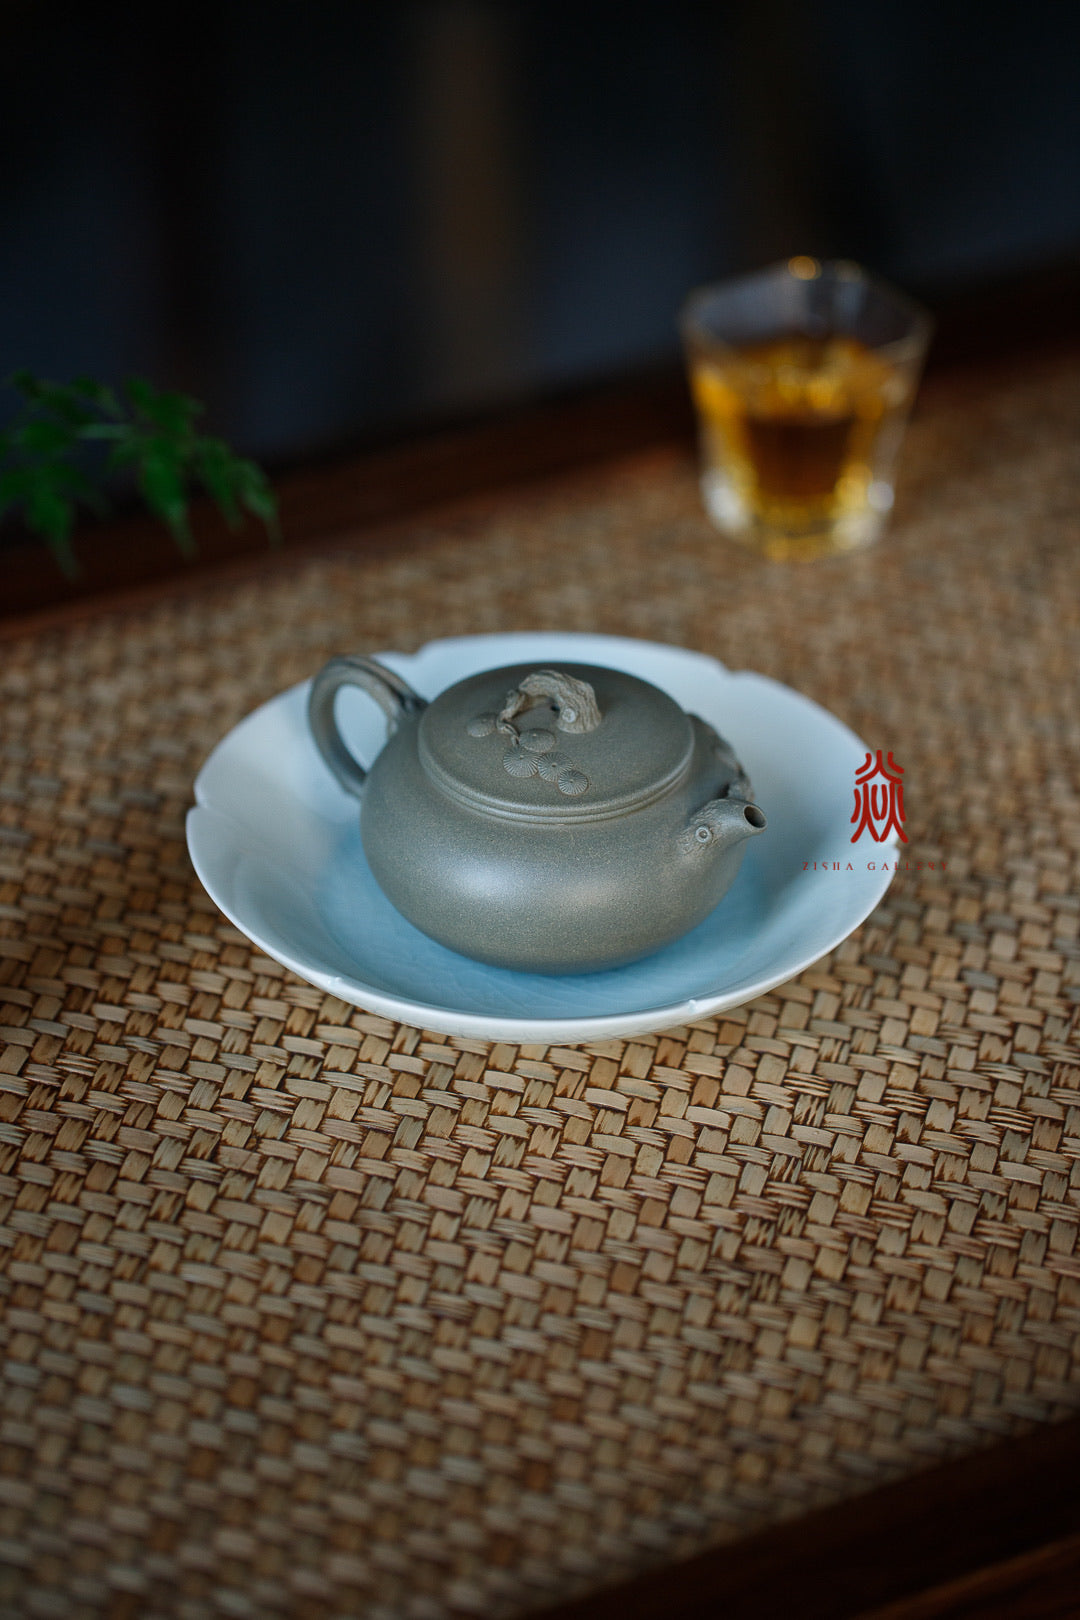 逸松 Yi Song 170ML 范志平 豆青泥 Dou Qing Ni - The Phans Yixing Zisha Teapot